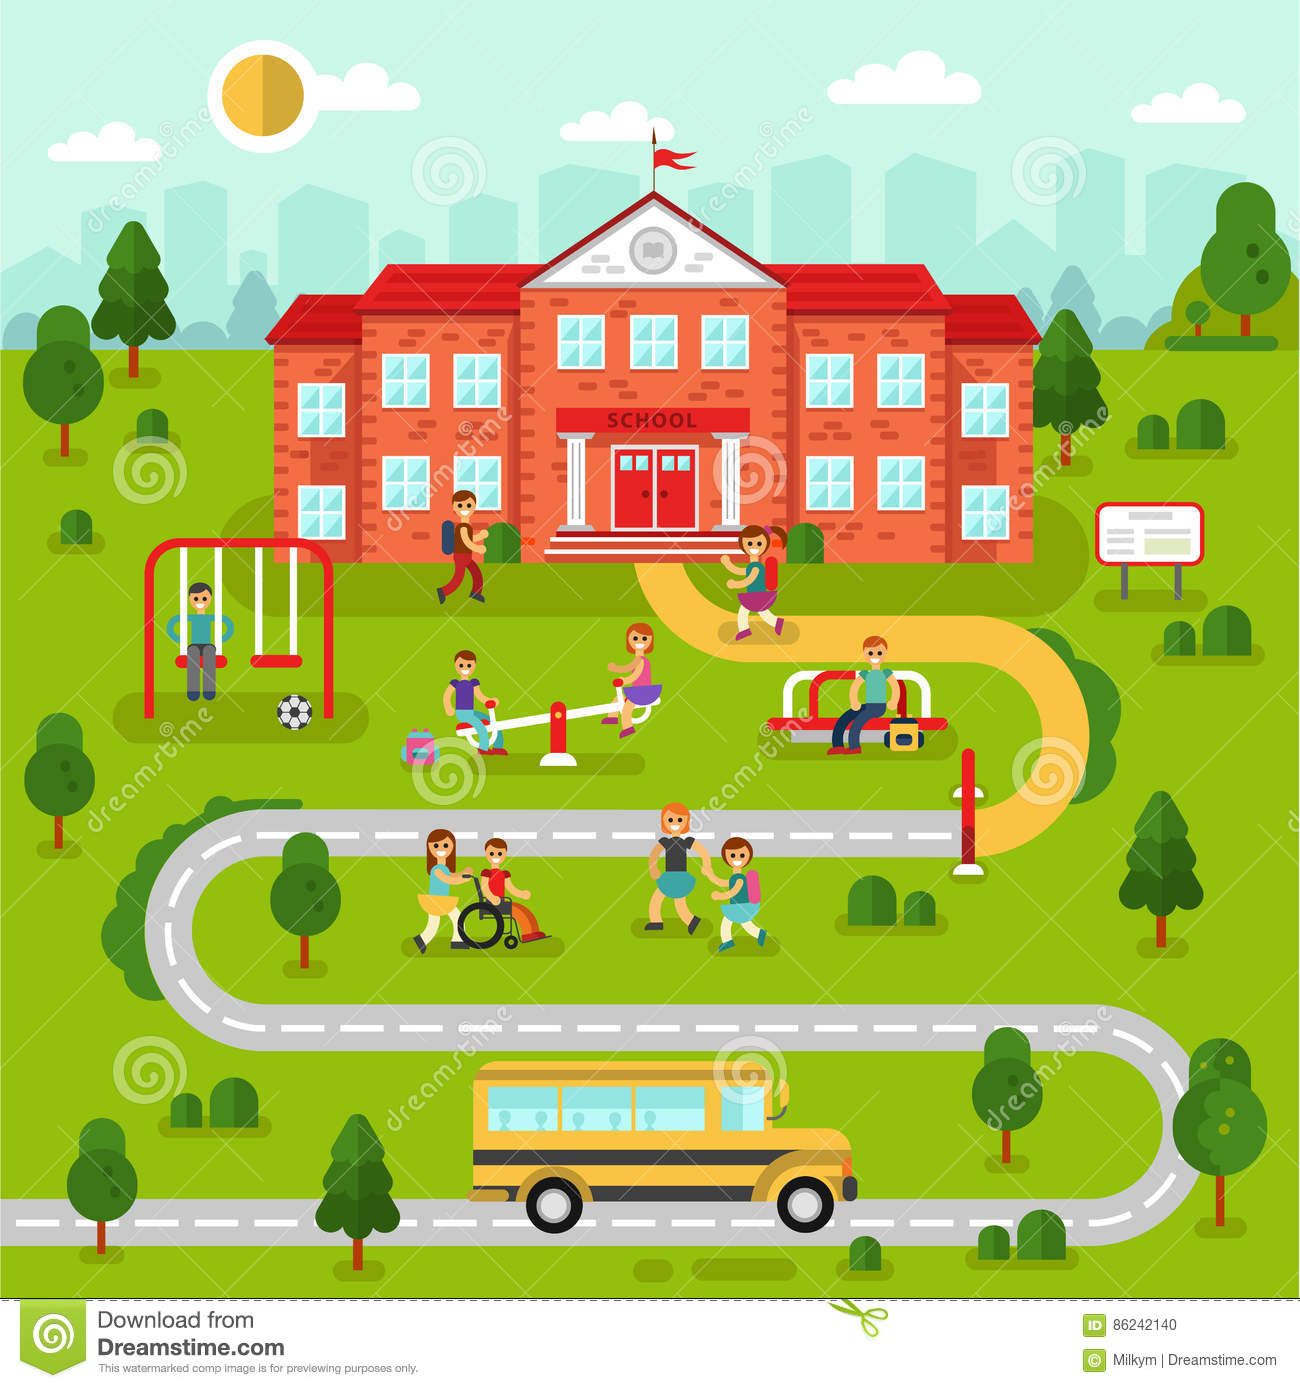 School Map Stock Vector Illustration Of Outdoor Concept